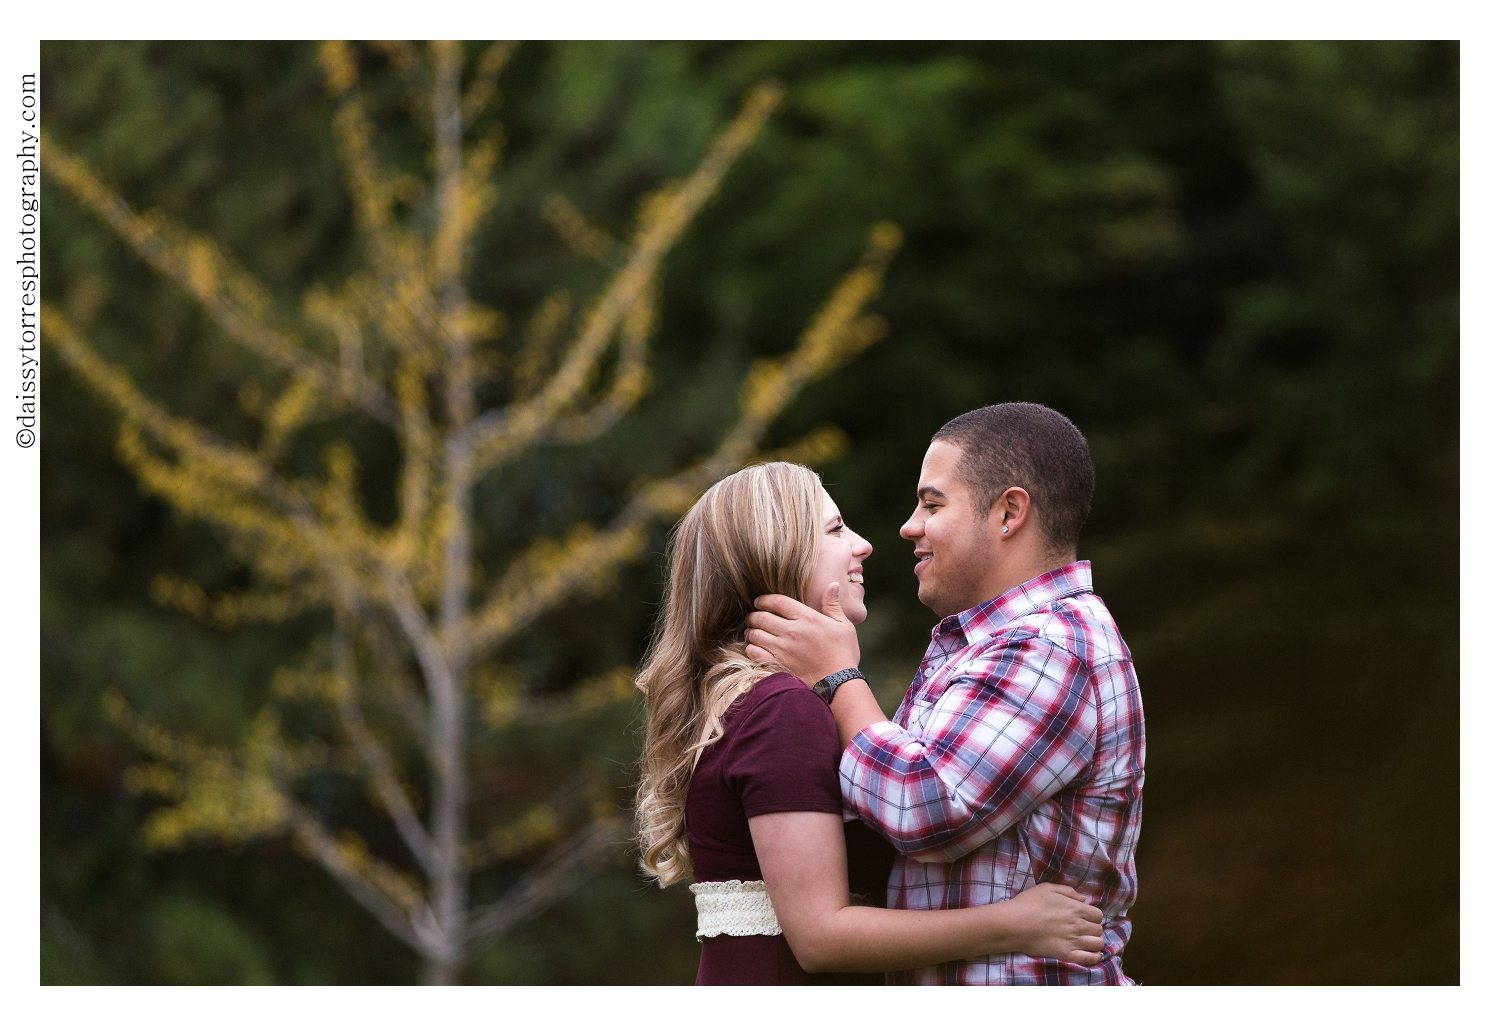 7 sure ways to make your engagement photos suck 4